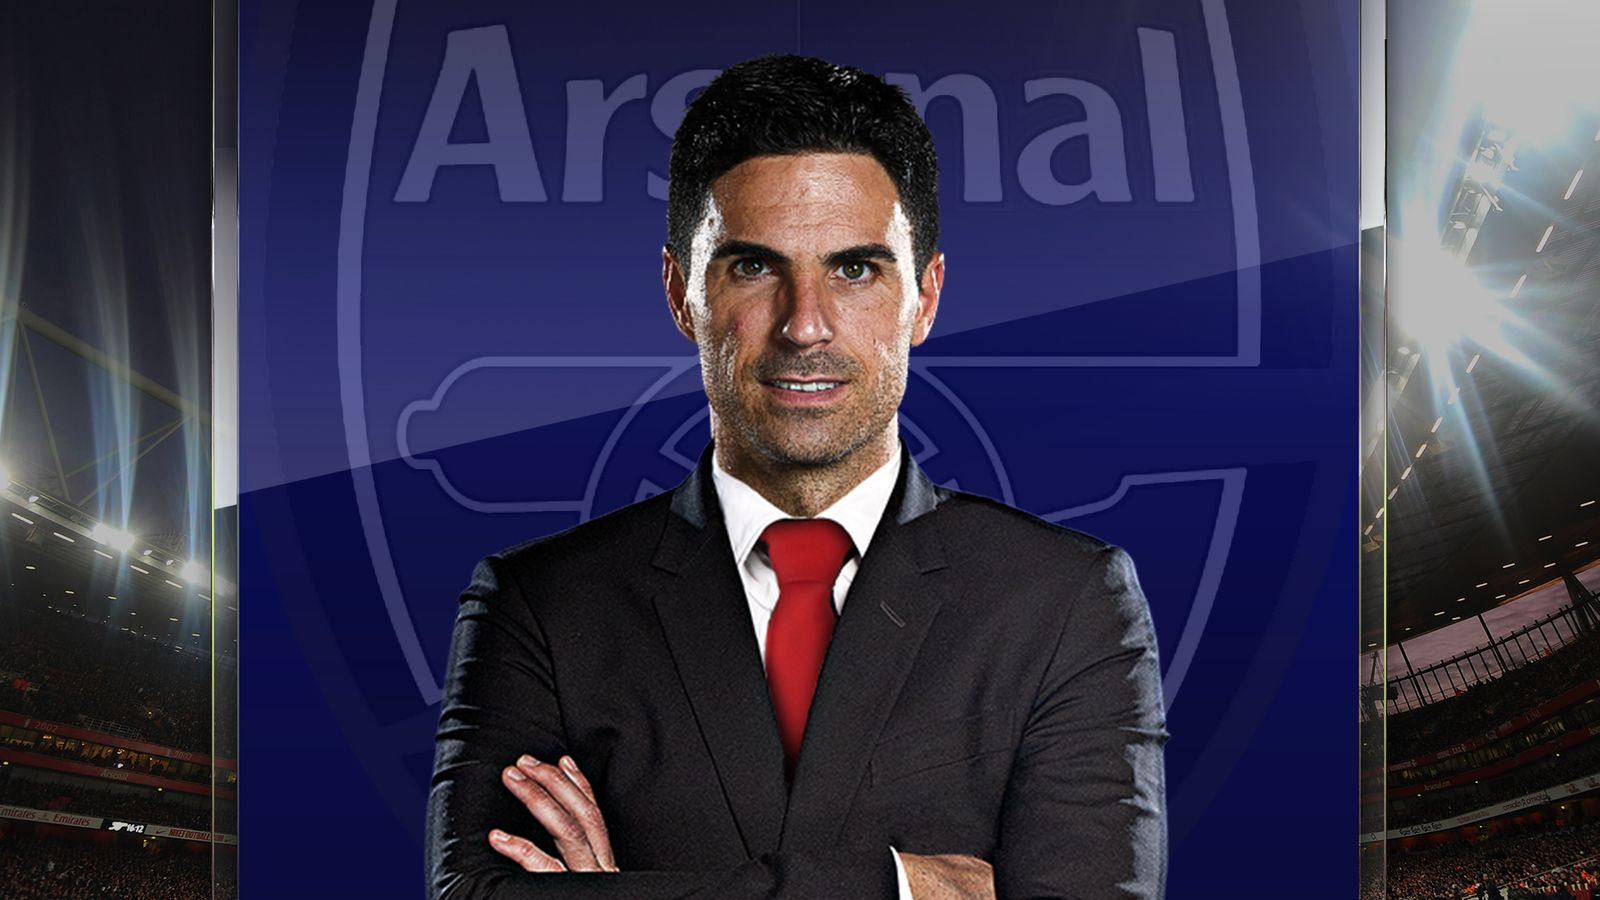 Mikel Arteta's start at Arsenal assessed by Paul Merson and Gary Neville